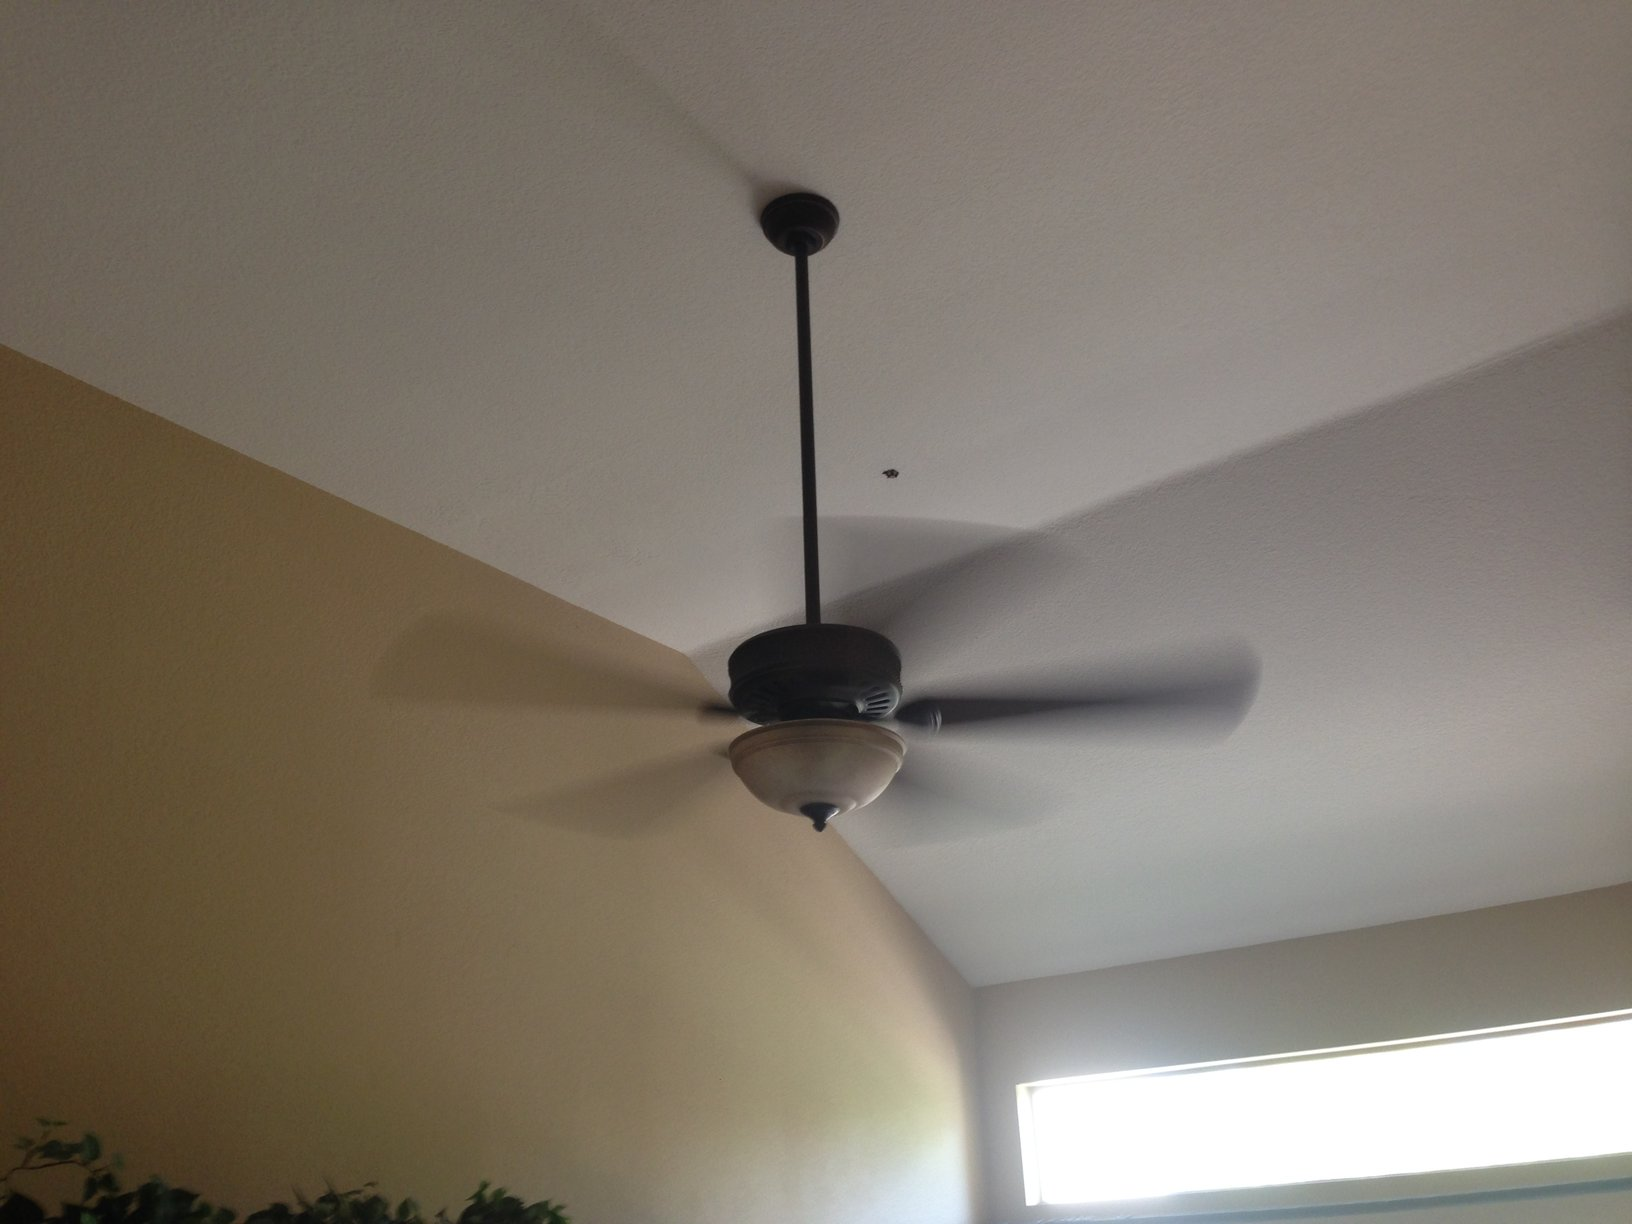 Ceiling Fan Installations Should You Hire an Electrician